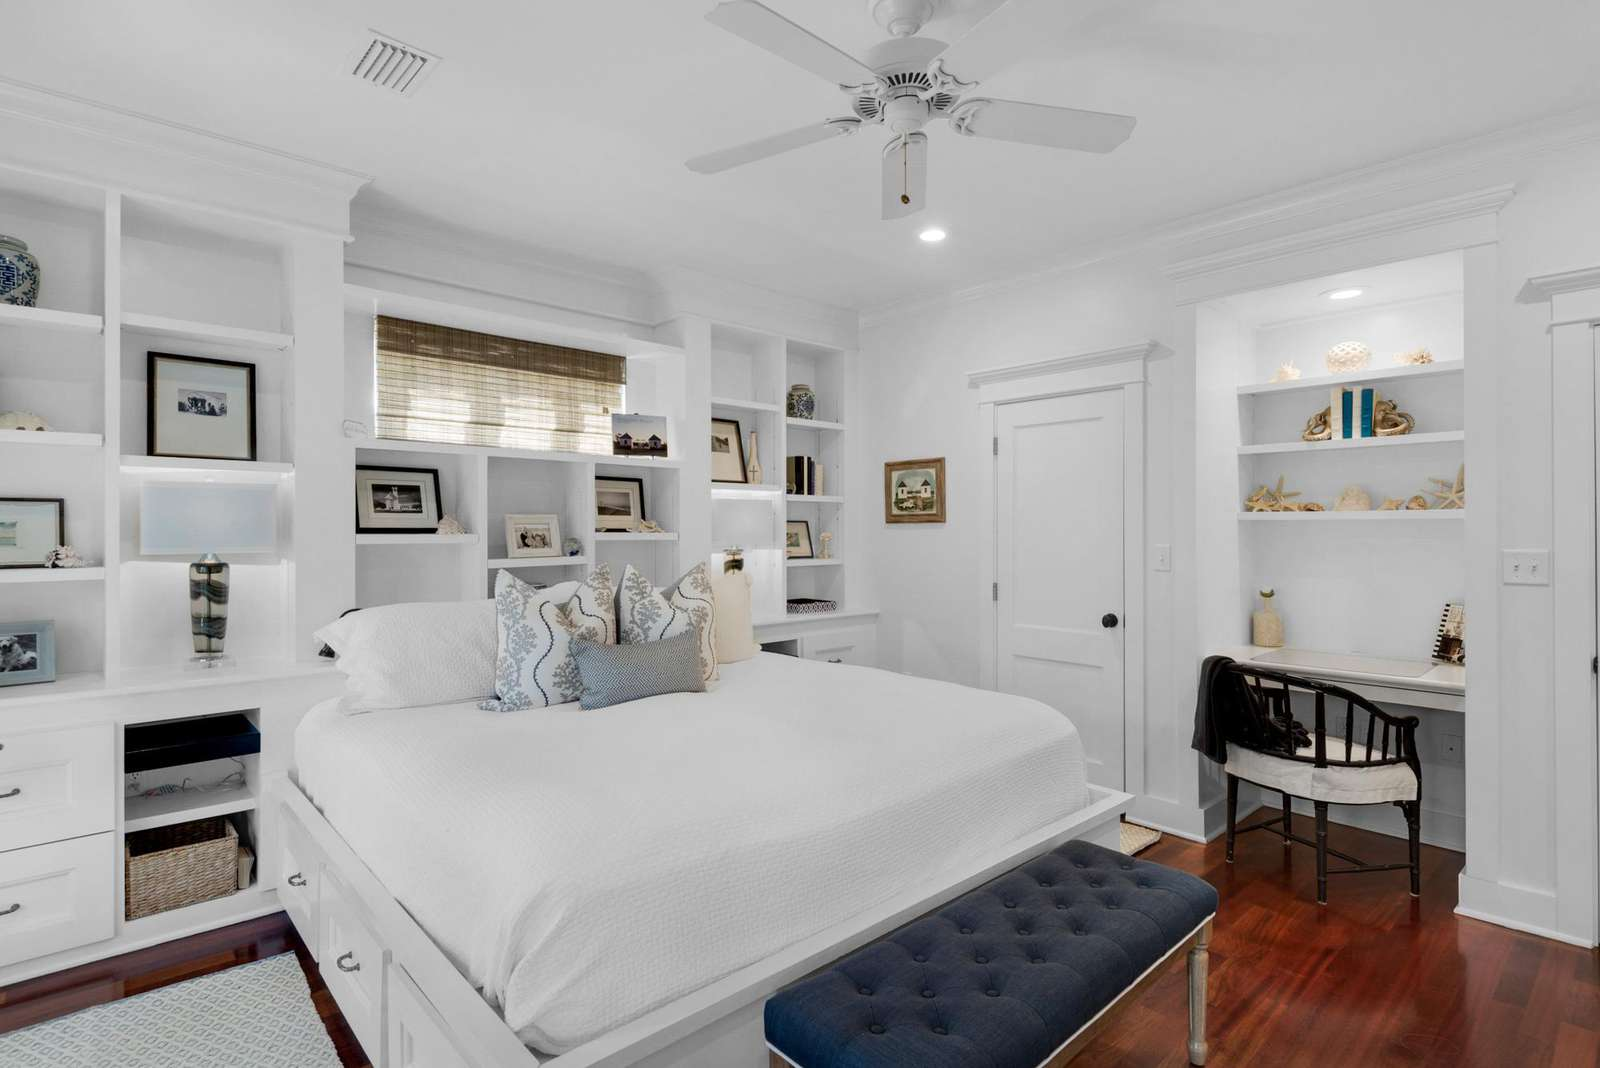 Master King Bedroom with Adjoining Bath